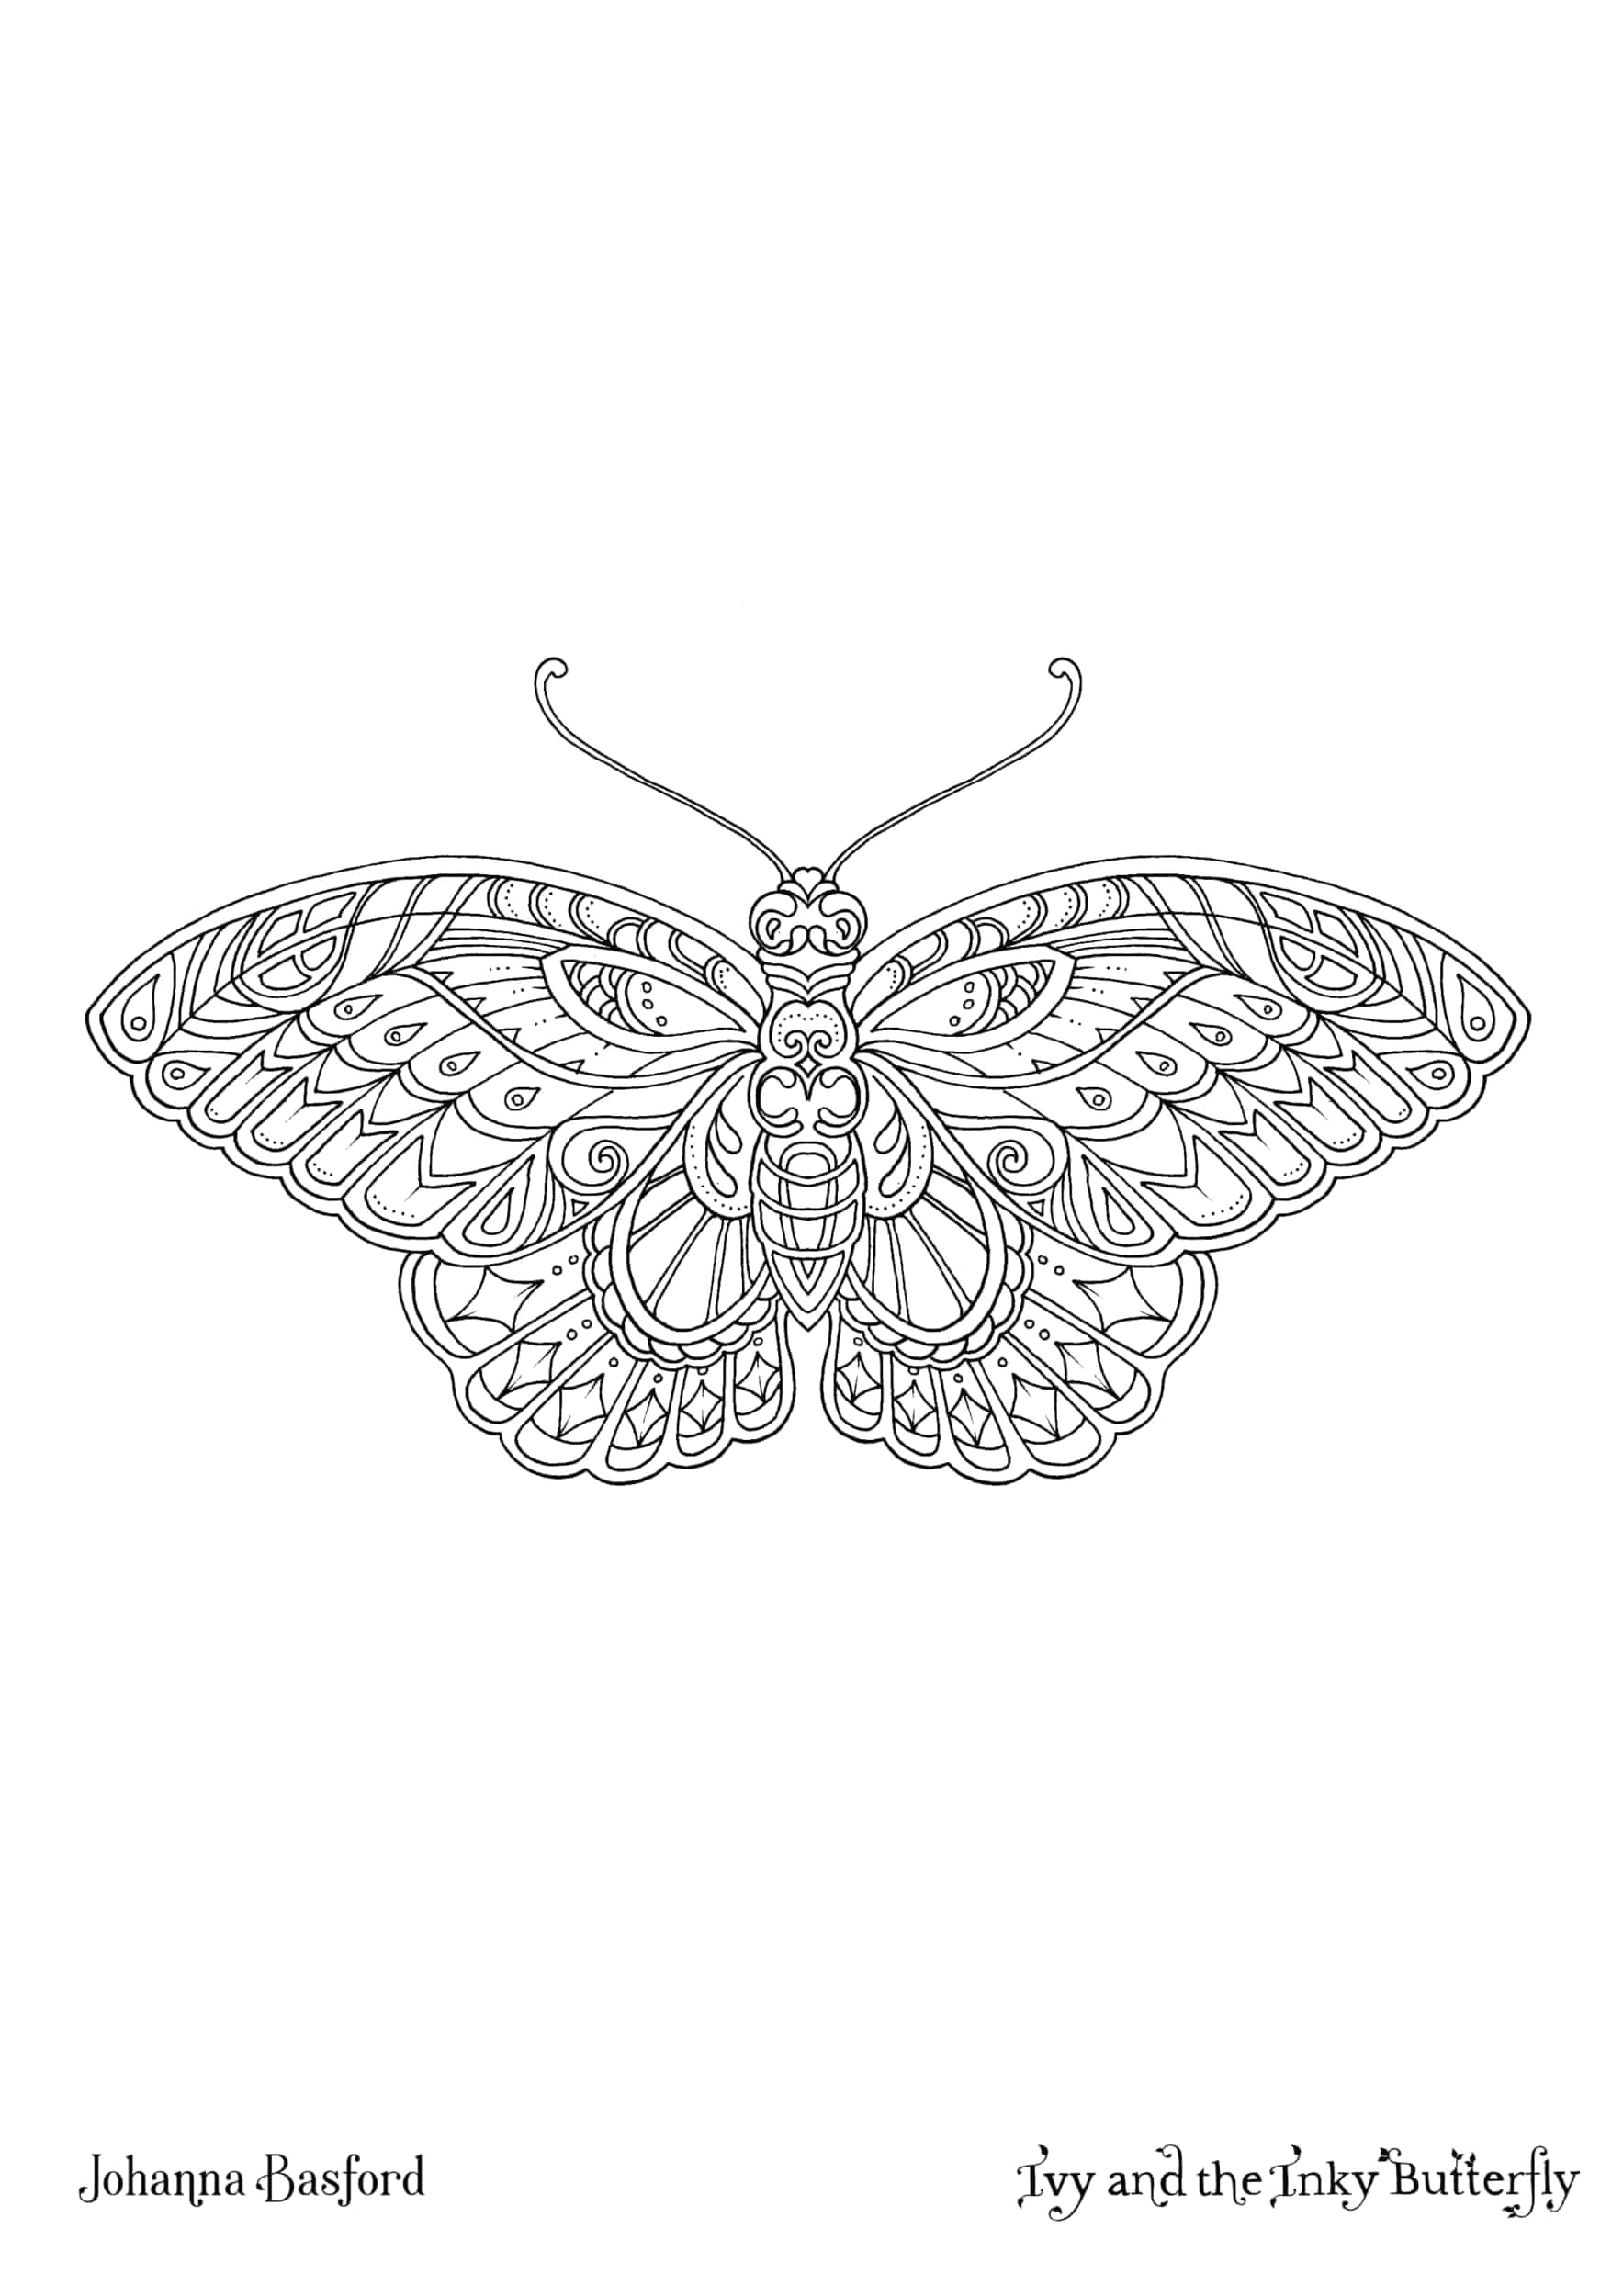 Ivy and the Inky butterfly Coloring Pages Ivy and the Inky butterfly Book Johanna Basford Johanna